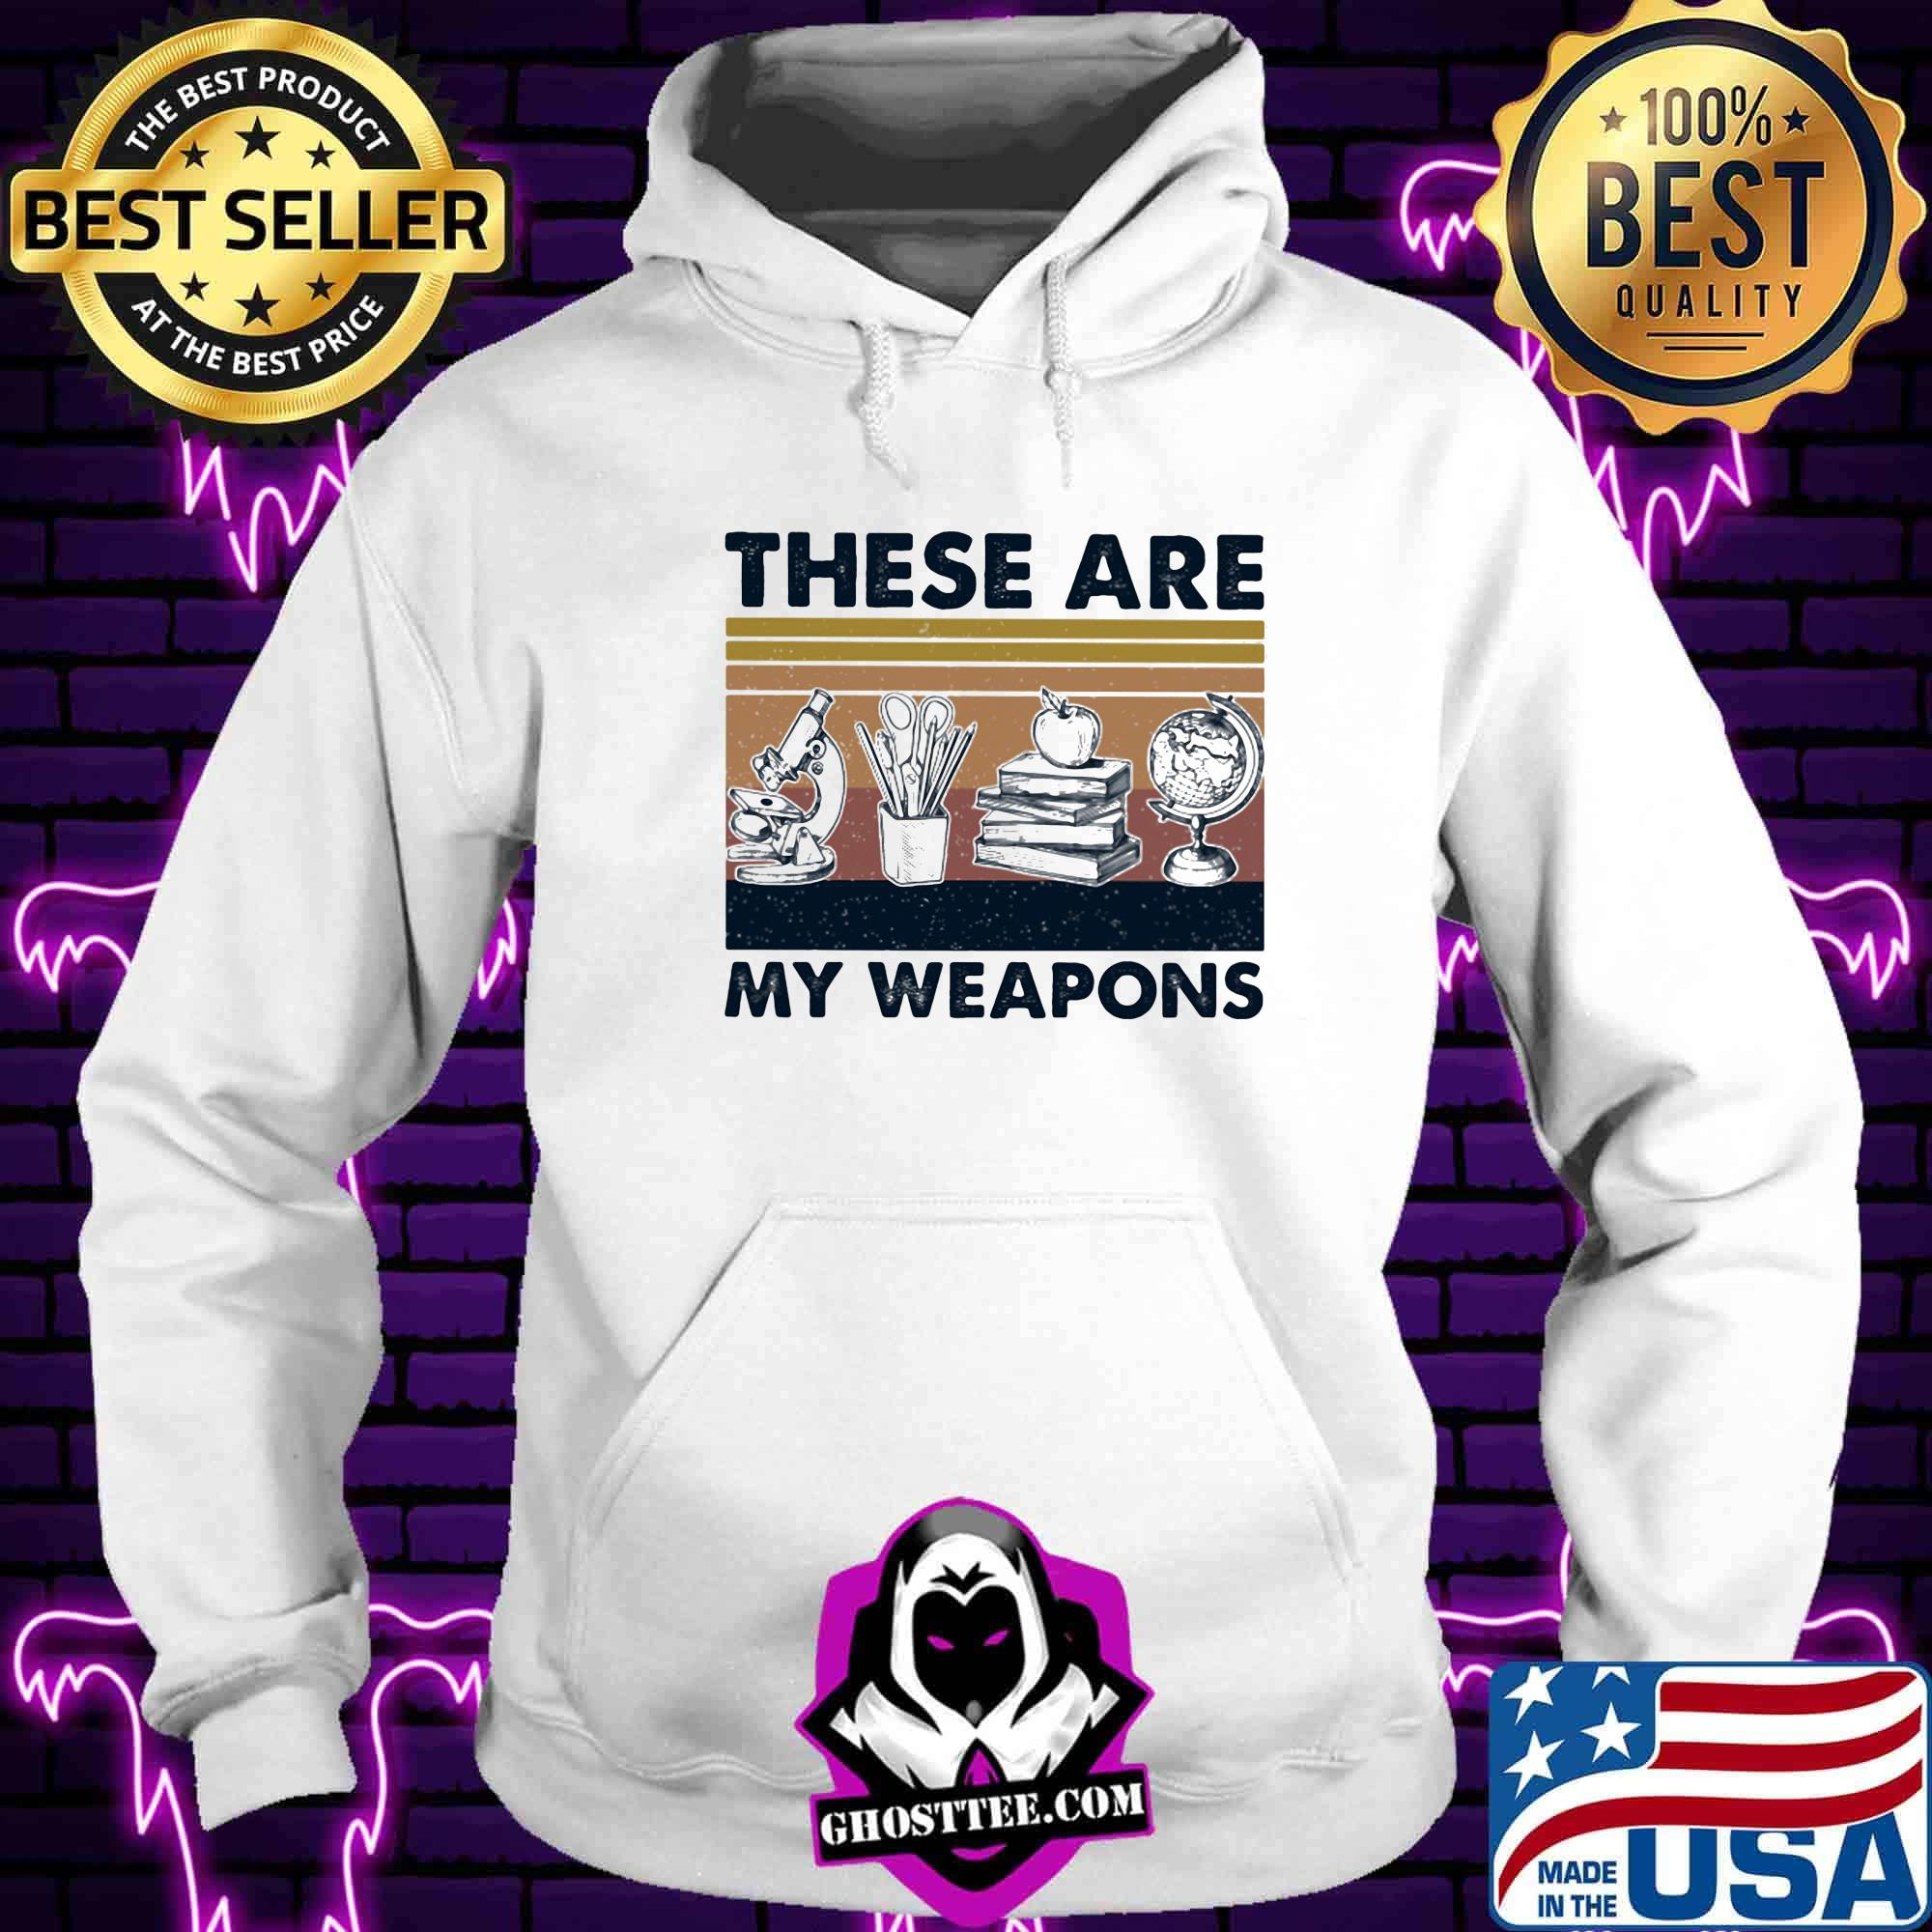 b0879b5b these are my weapons microscope earth model pen box apple book vintage retro shirt hoodie - Home